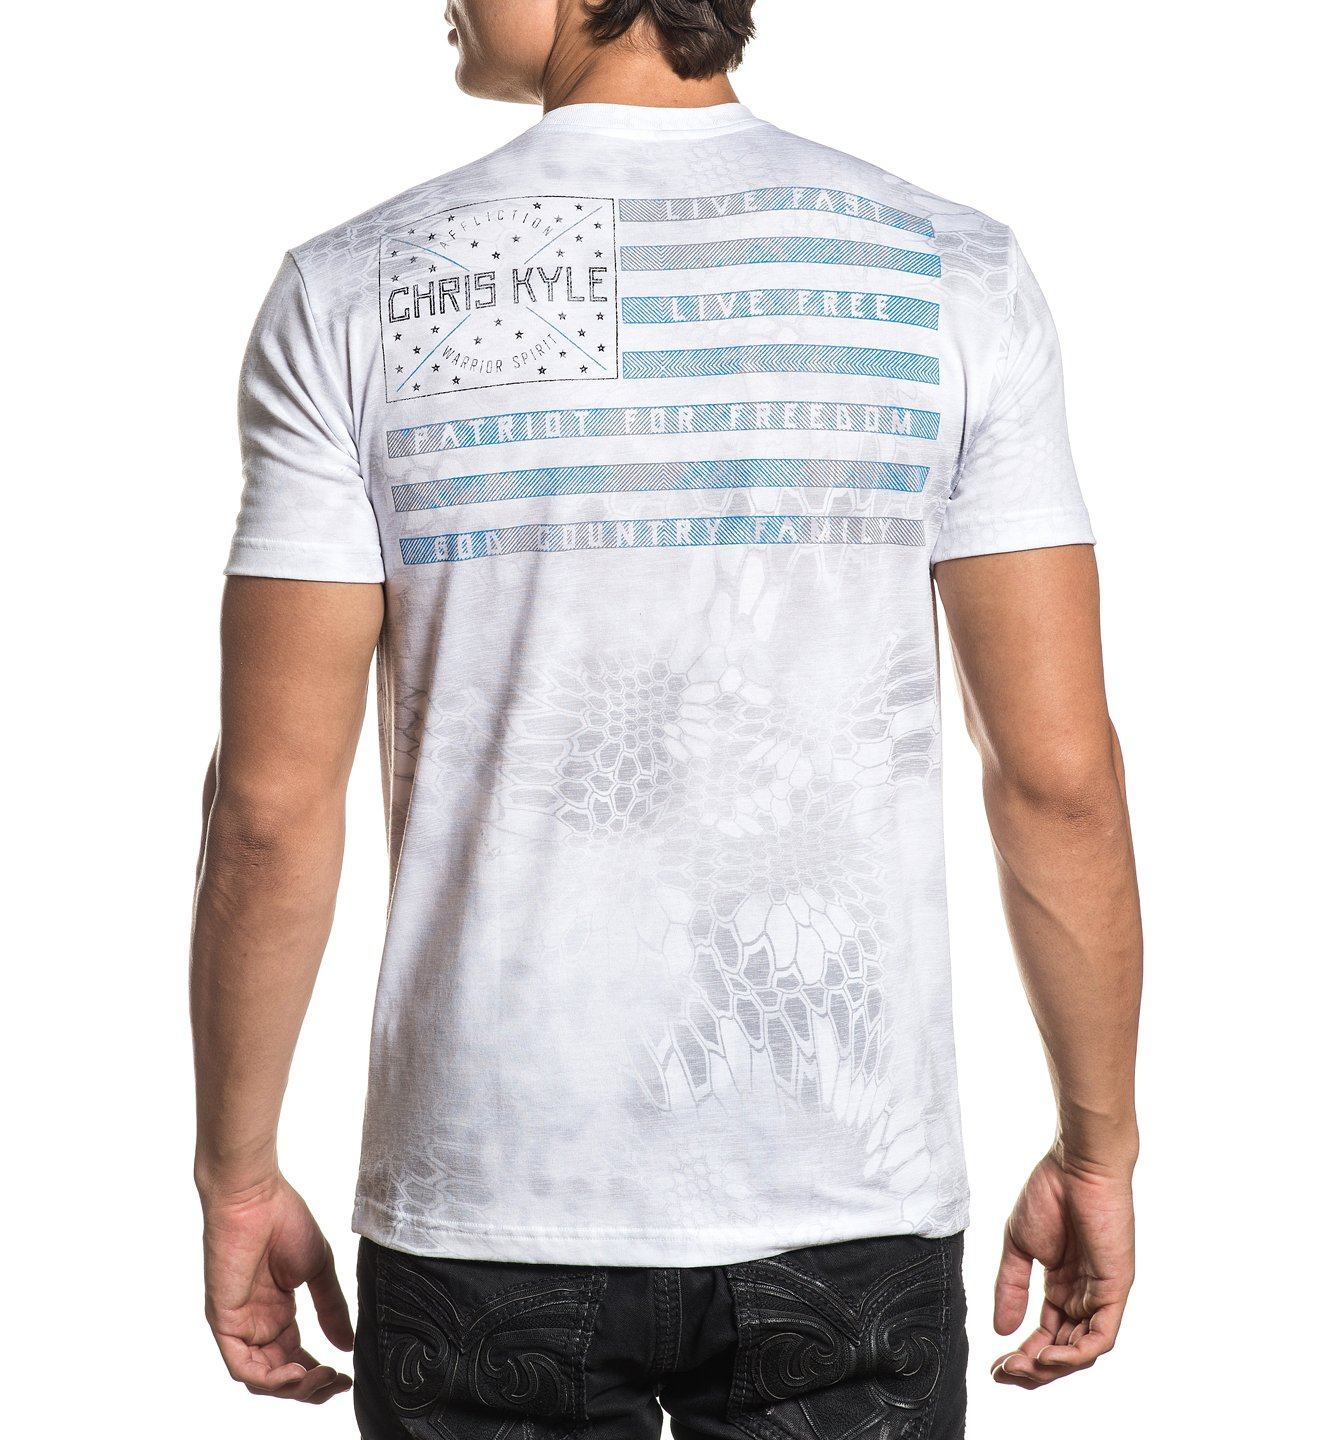 Ck Coordinates - Mens Short Sleeve Tees - Affliction Clothing